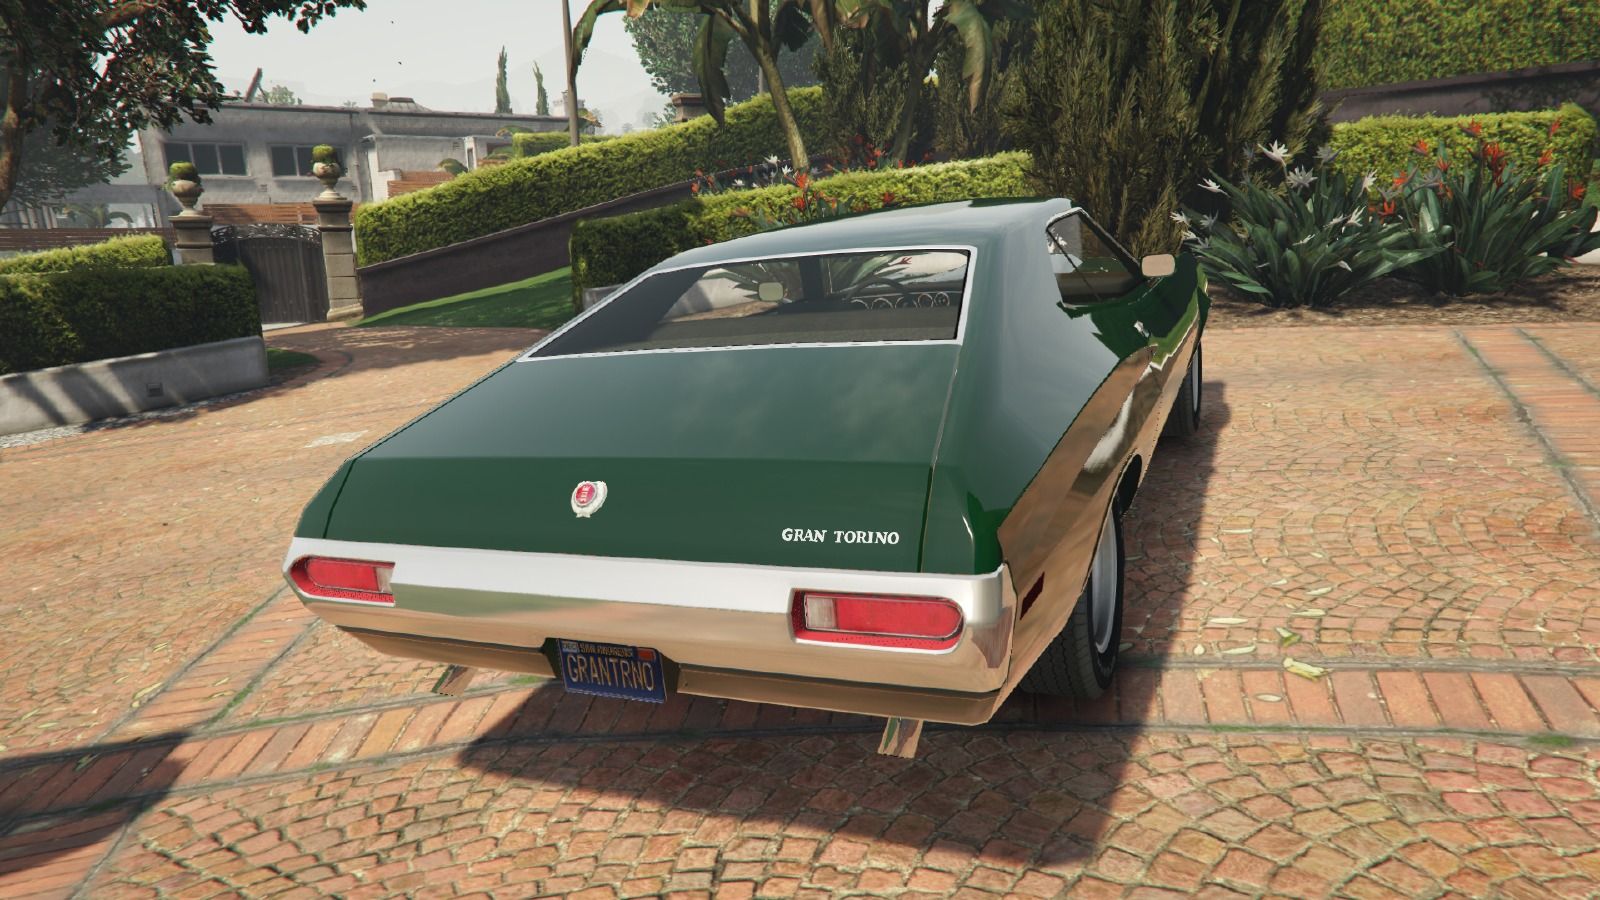 ford gran torino sport 1972 vehicules pour gta v sur gta modding. Black Bedroom Furniture Sets. Home Design Ideas